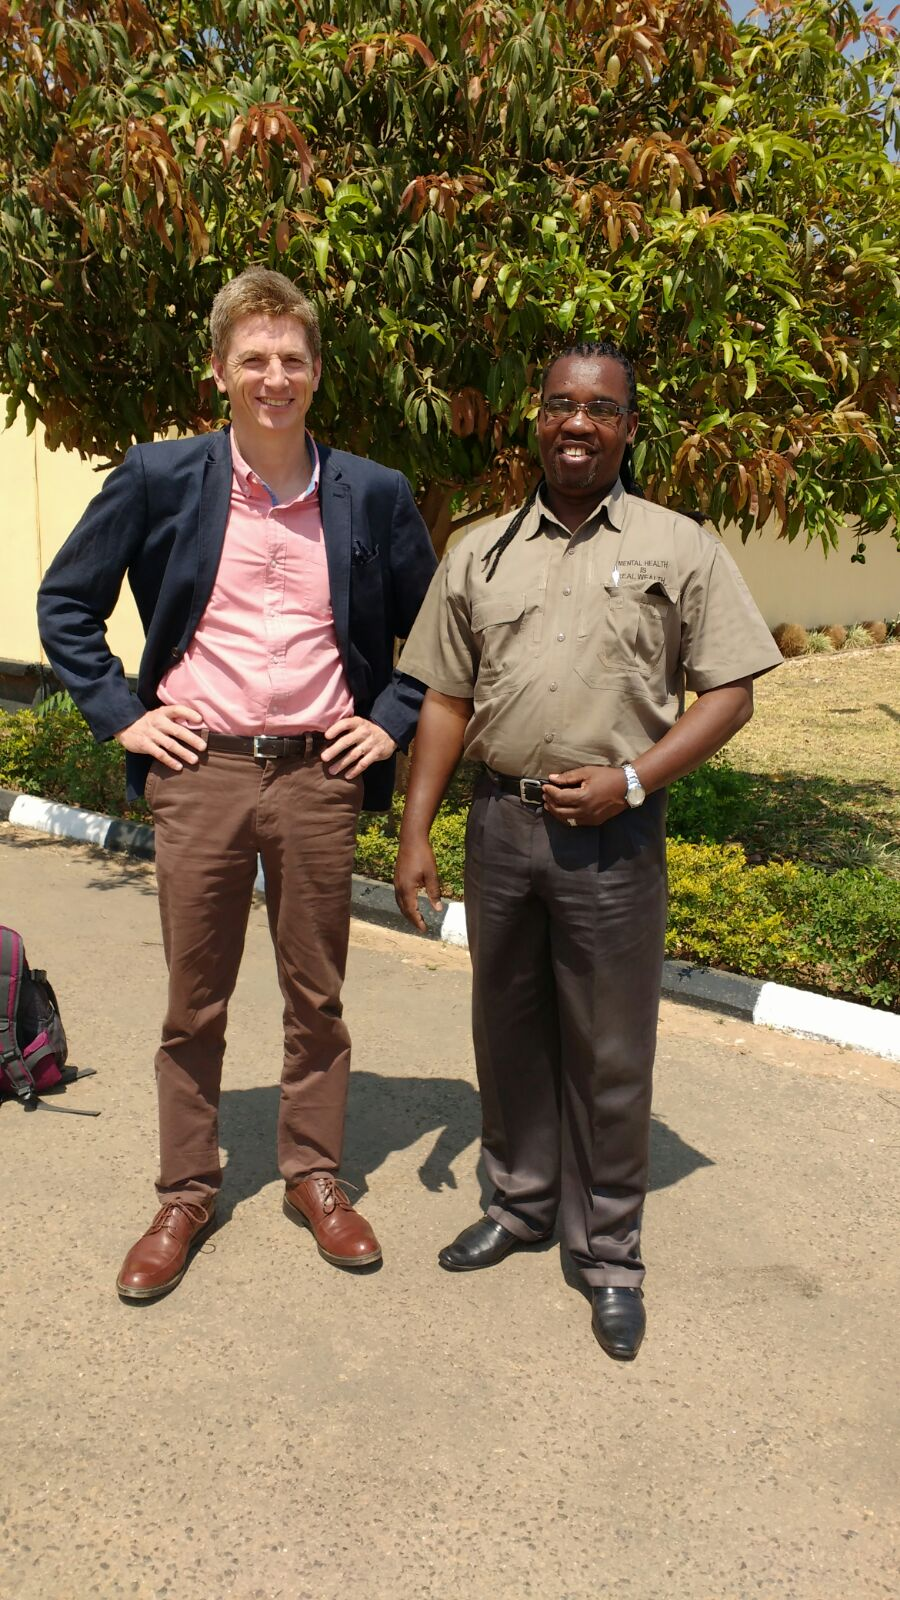 With Mr Hinson Siabwata at Chainama College of Health Sciences